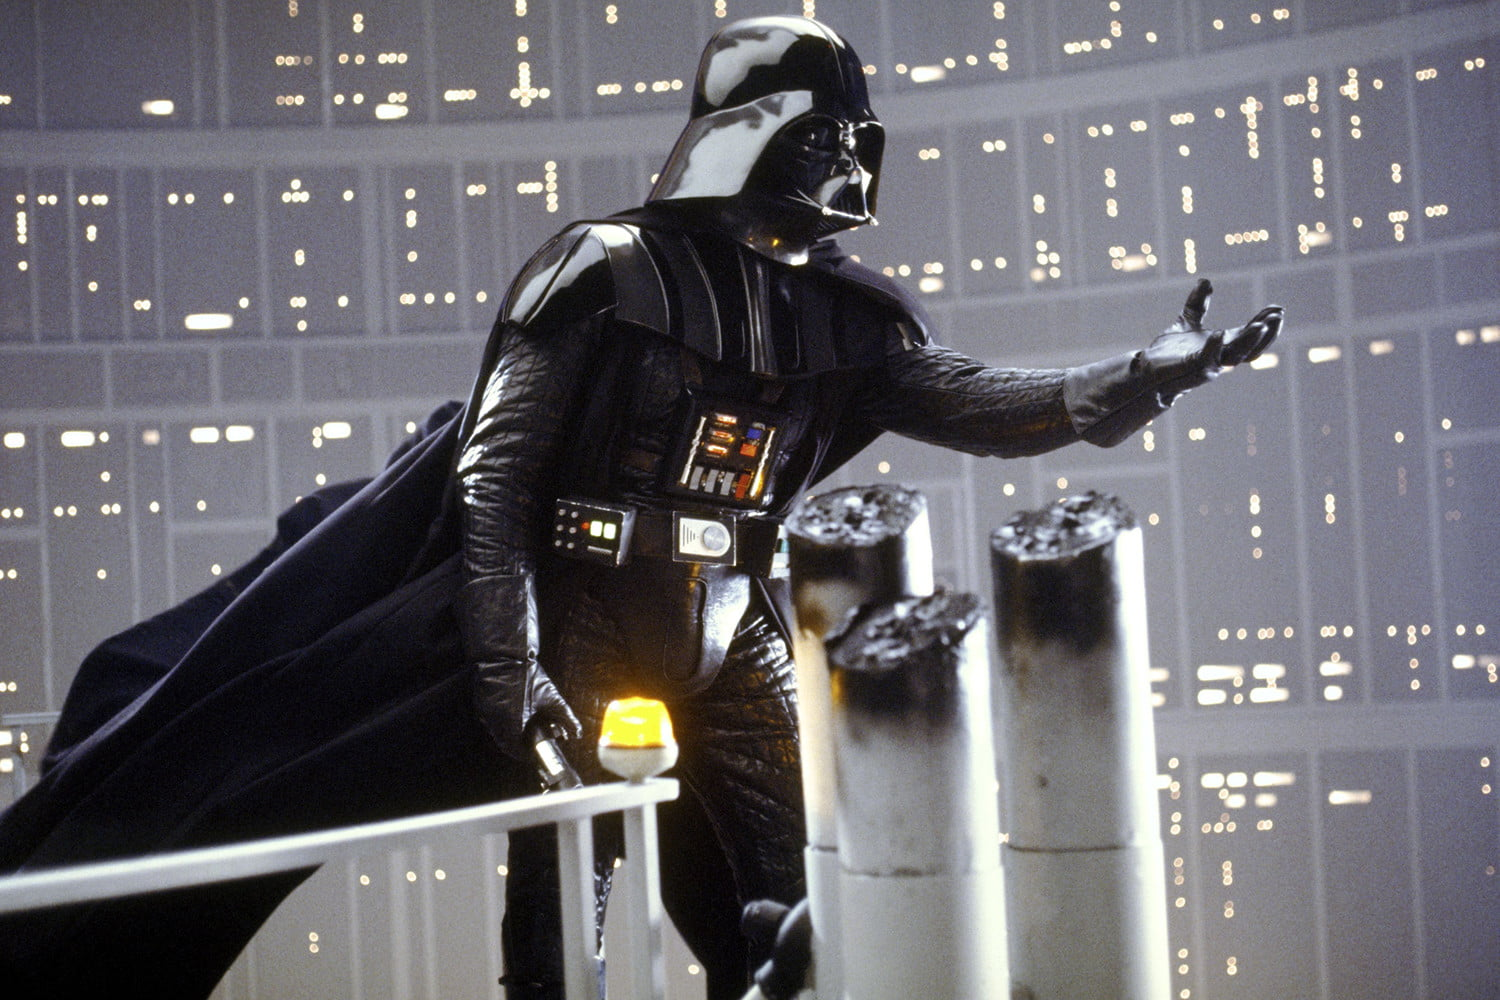 Here's the Best Order To Watch The Star Wars Movies | Digital Trends